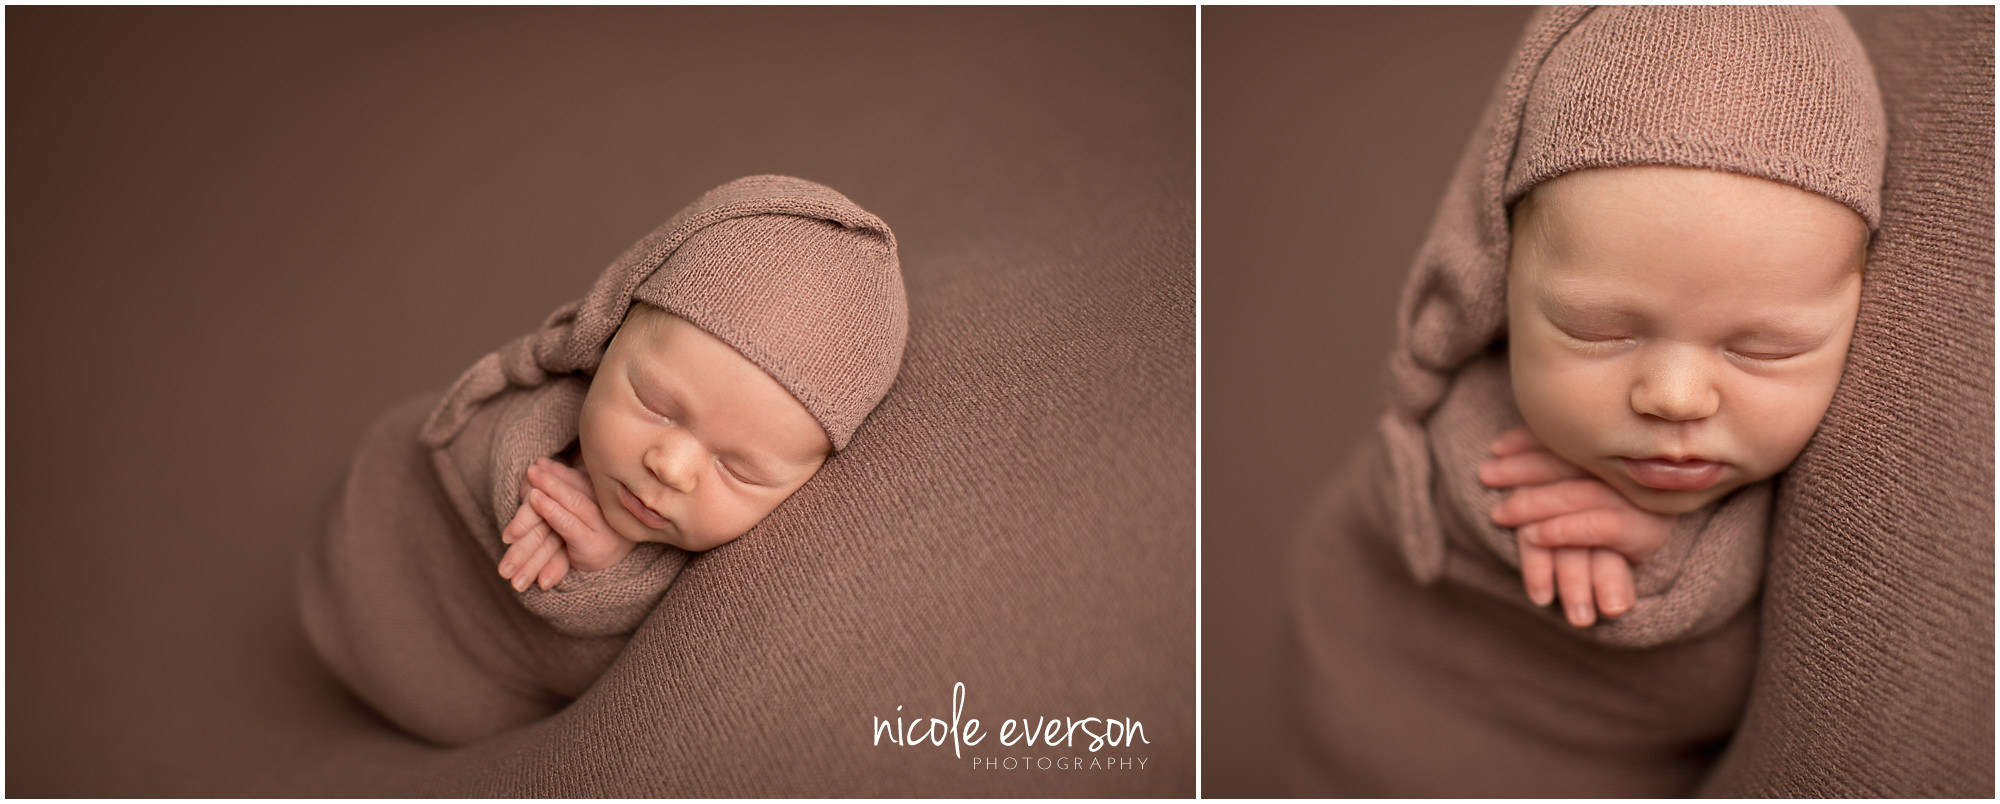 newborn photographer tallahassee photographed this newborn on a backdrop with a matching wrap